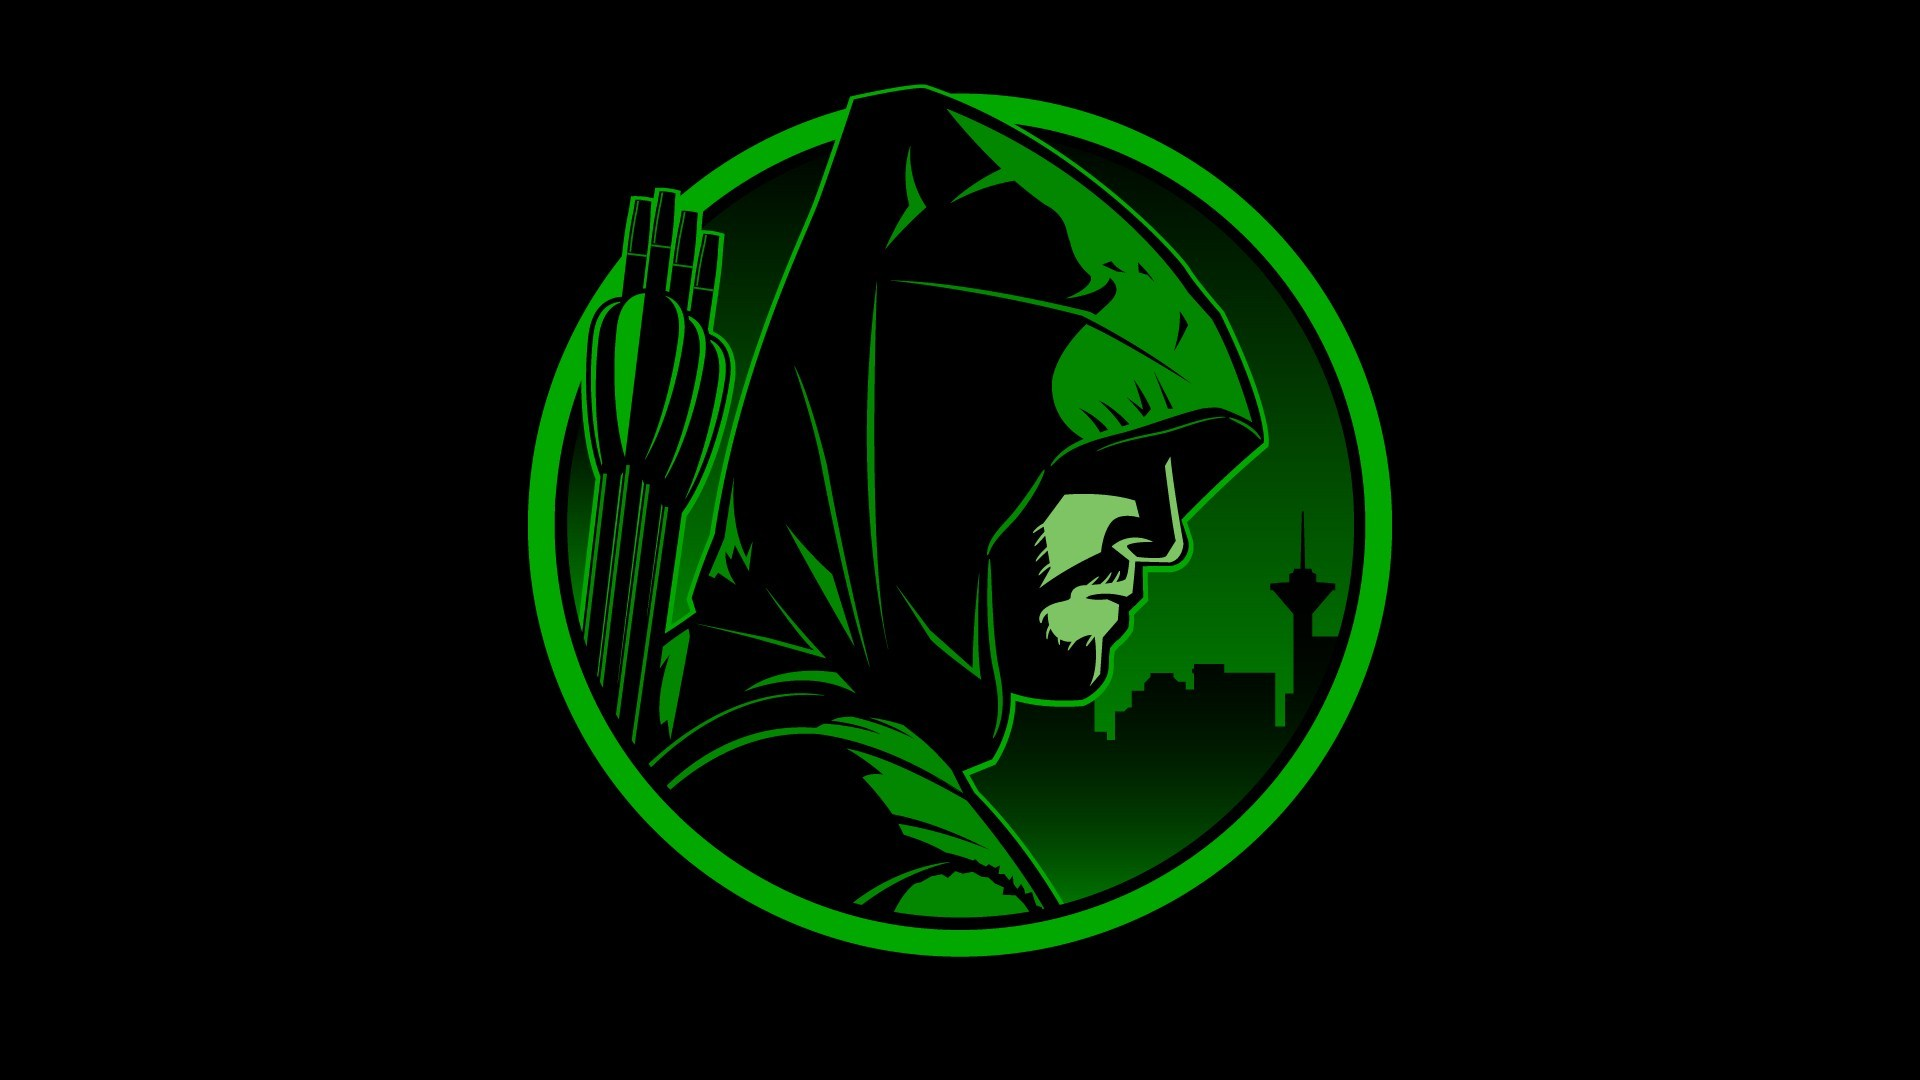 Wallpaper Iphone 5 Full Hd Cw Arrow Iphone Wallpaper 75 Images